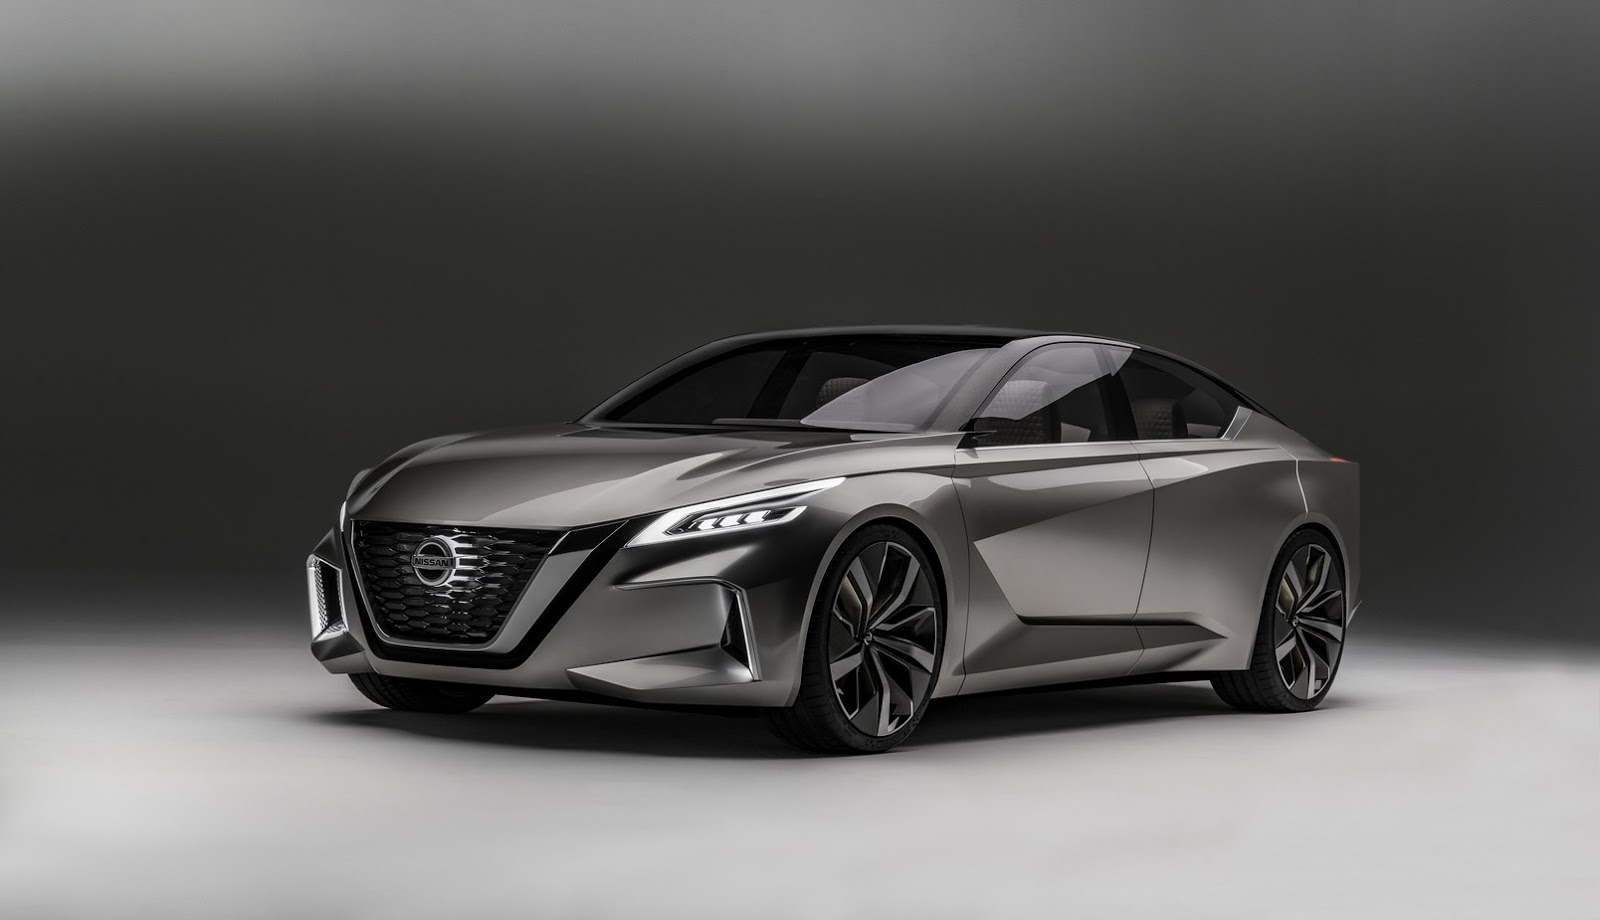 Nissan Vmotion 2.0 concept (26)